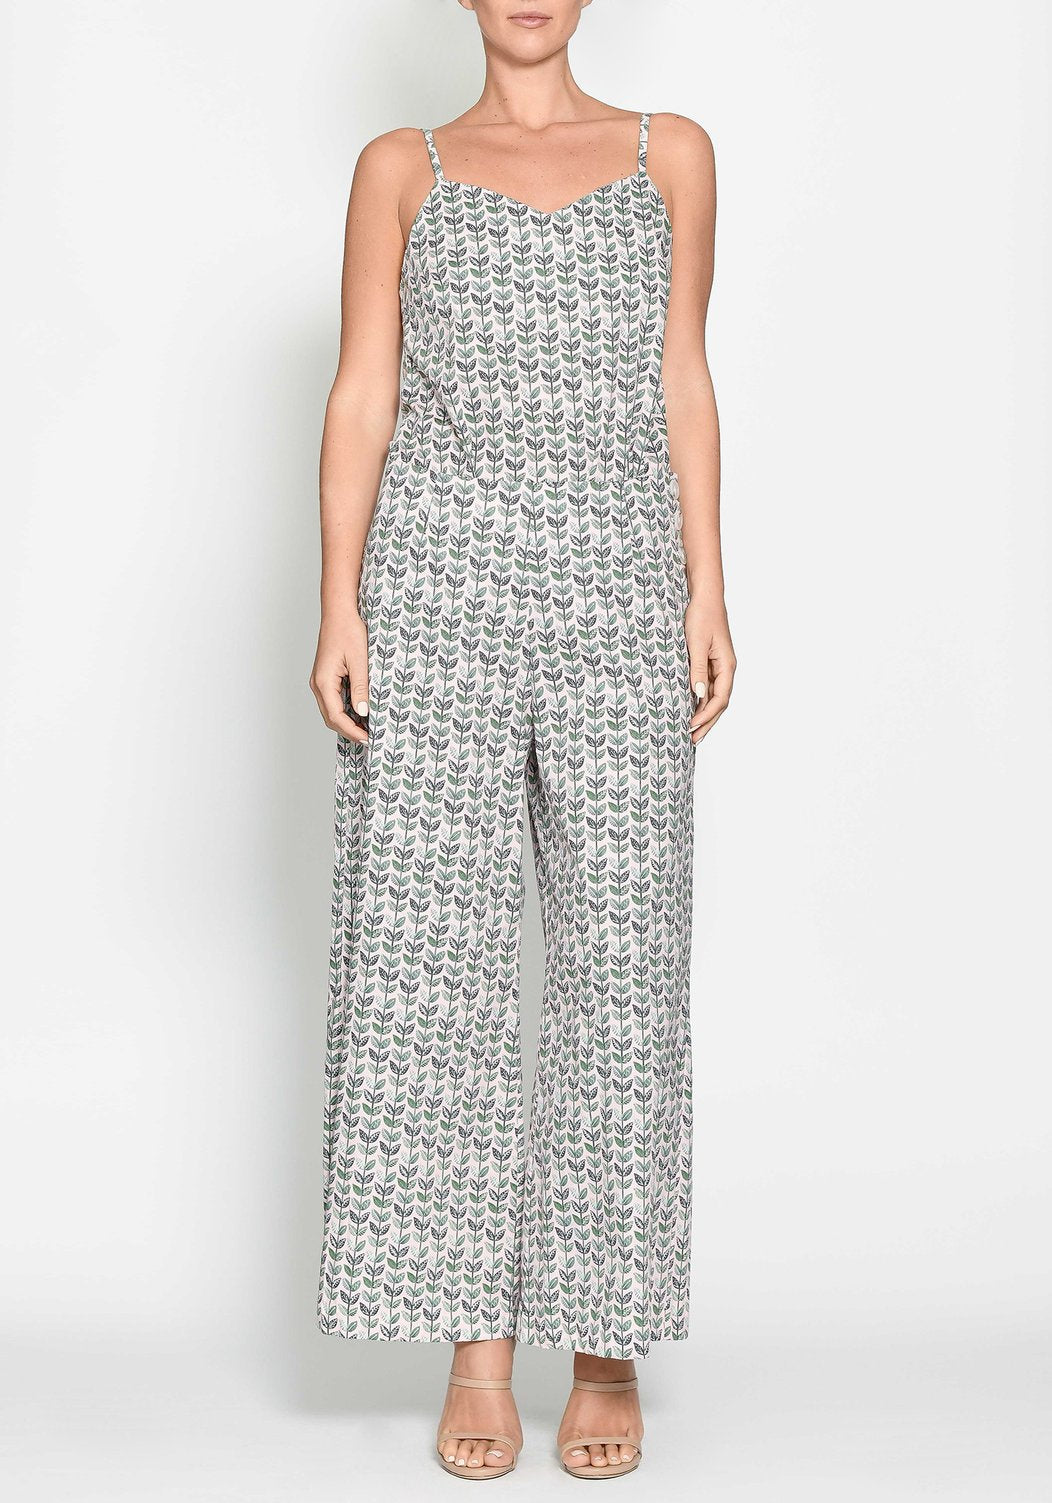 Tuscany Palazzo Pant - Vine Print | Shop POL at Wallace&Gibbs in Arrowtown, NZ